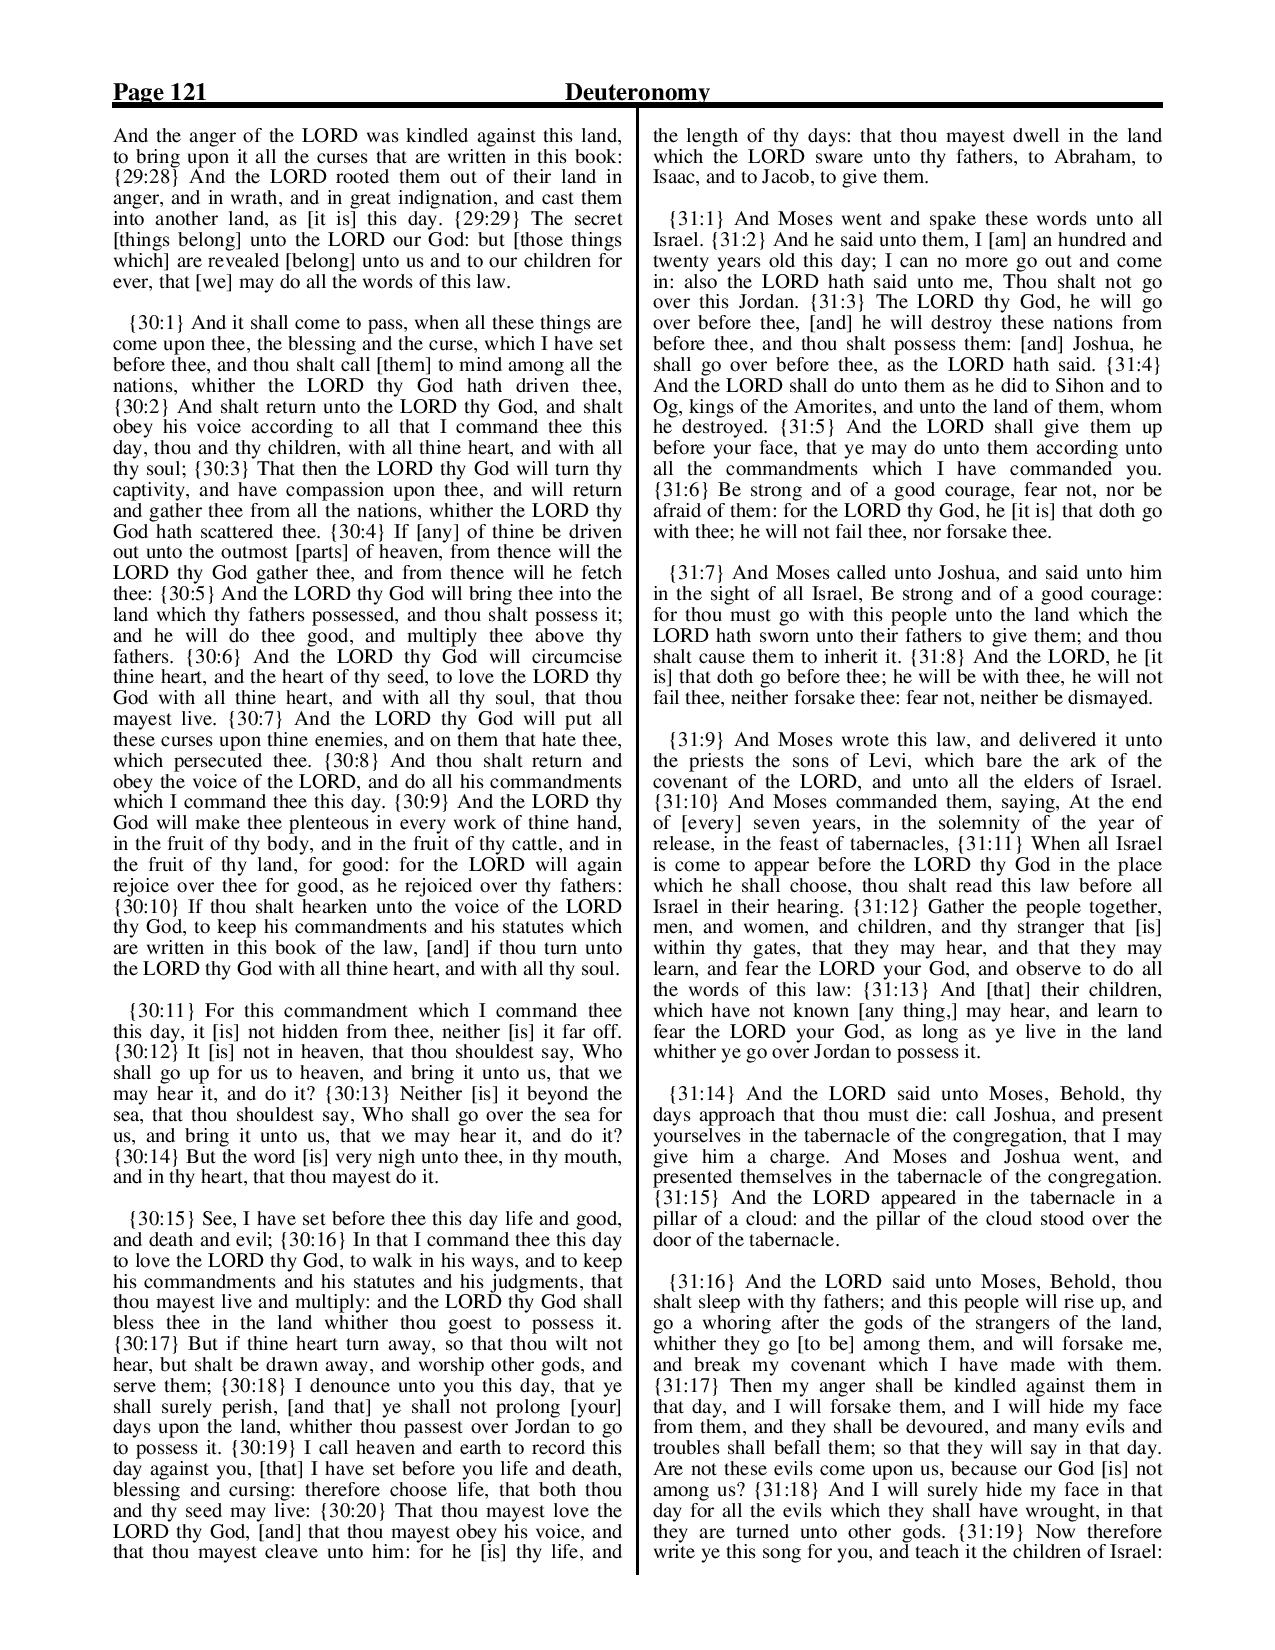 King-James-Bible-KJV-Bible-PDF-page-142